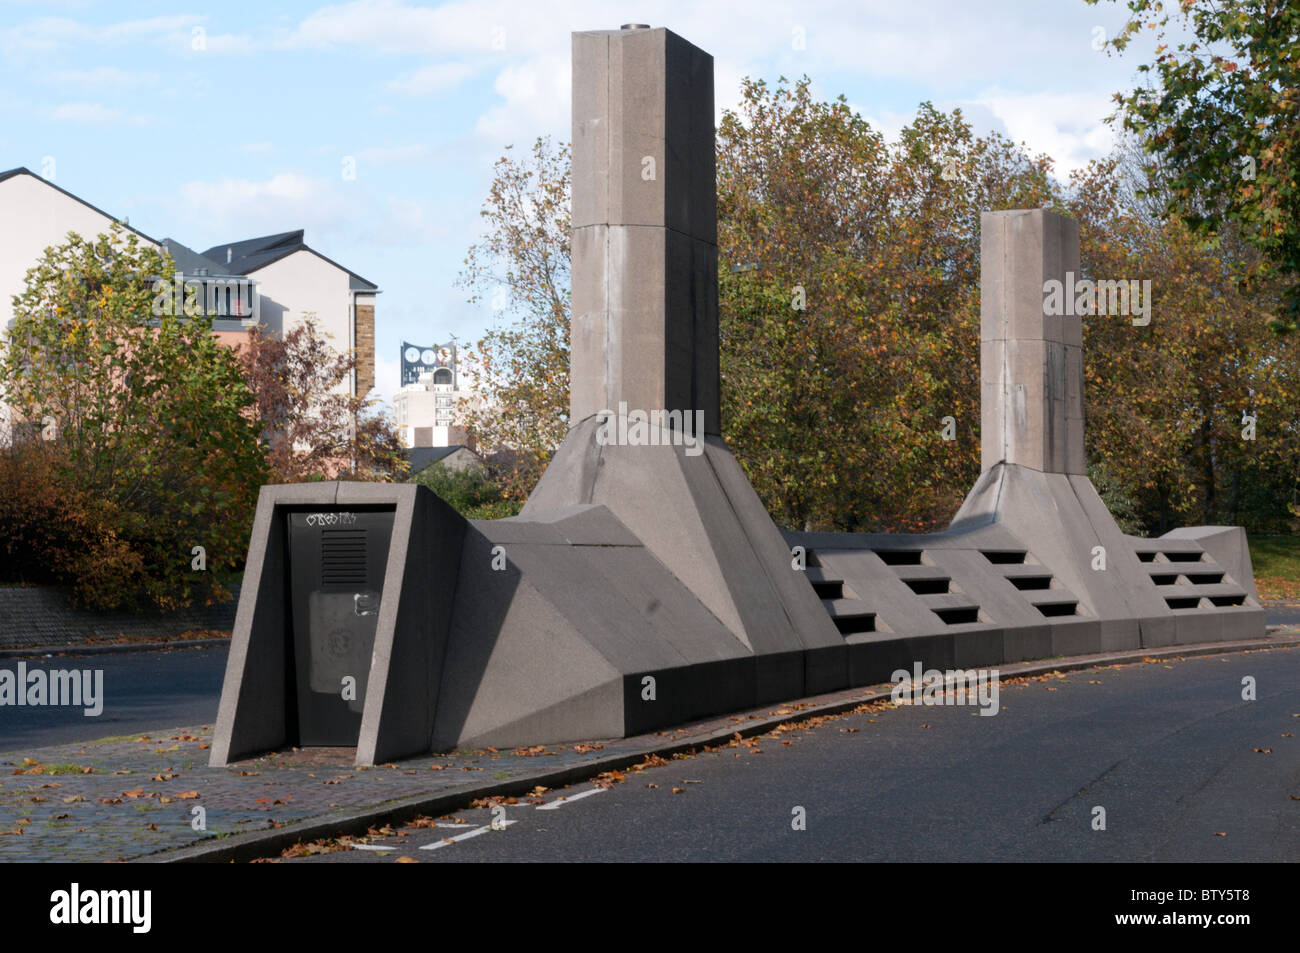 Ventilation shafts in Akerman Road, London, SW9 - Stock Image